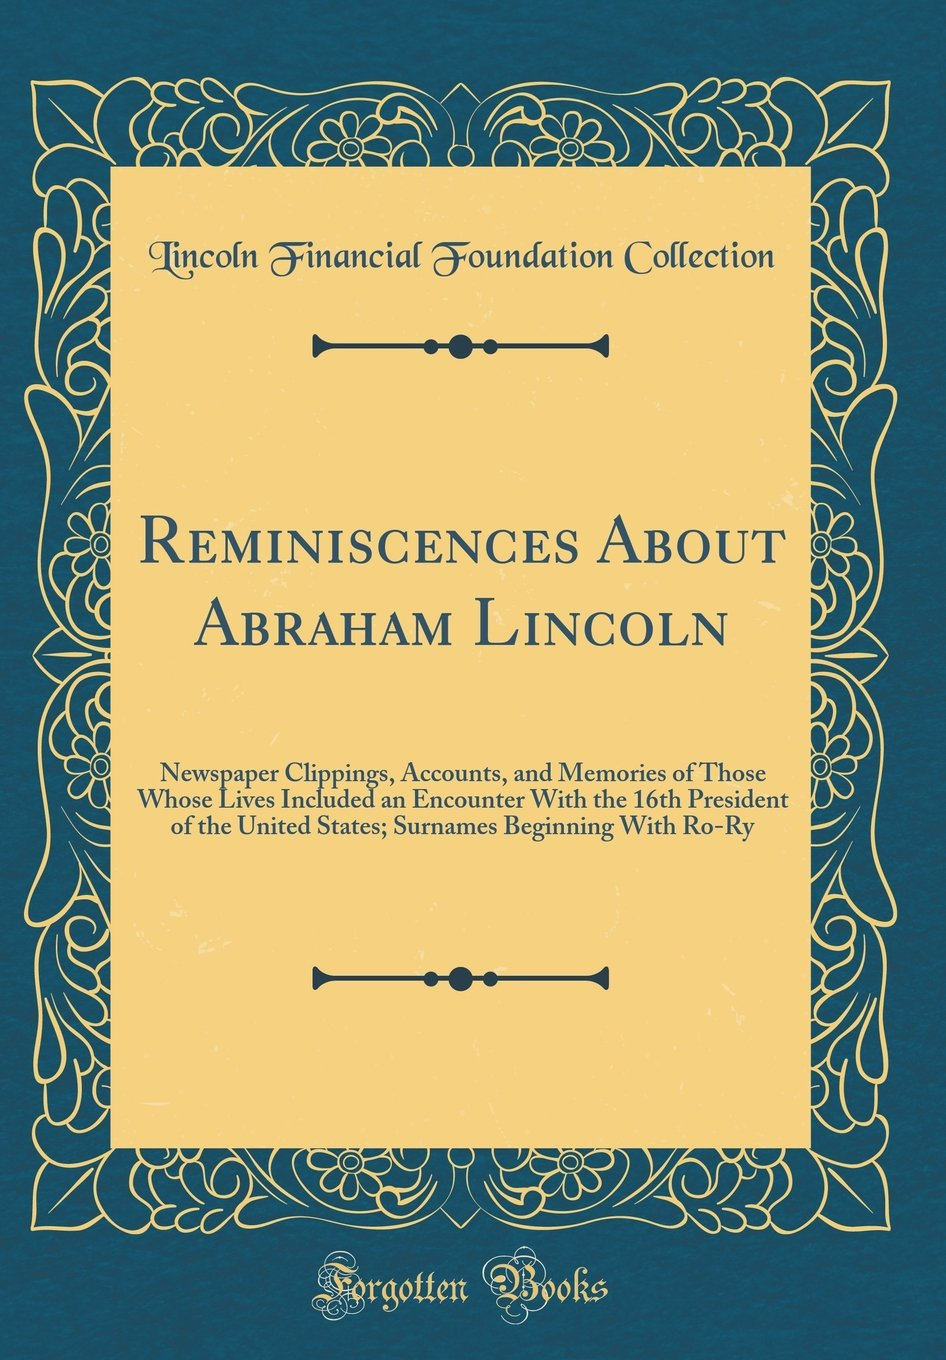 Download Reminiscences About Abraham Lincoln: Newspaper Clippings, Accounts, and Memories of Those Whose Lives Included an Encounter With the 16th President of ... Beginning With Ro-Ry (Classic Reprint) ebook